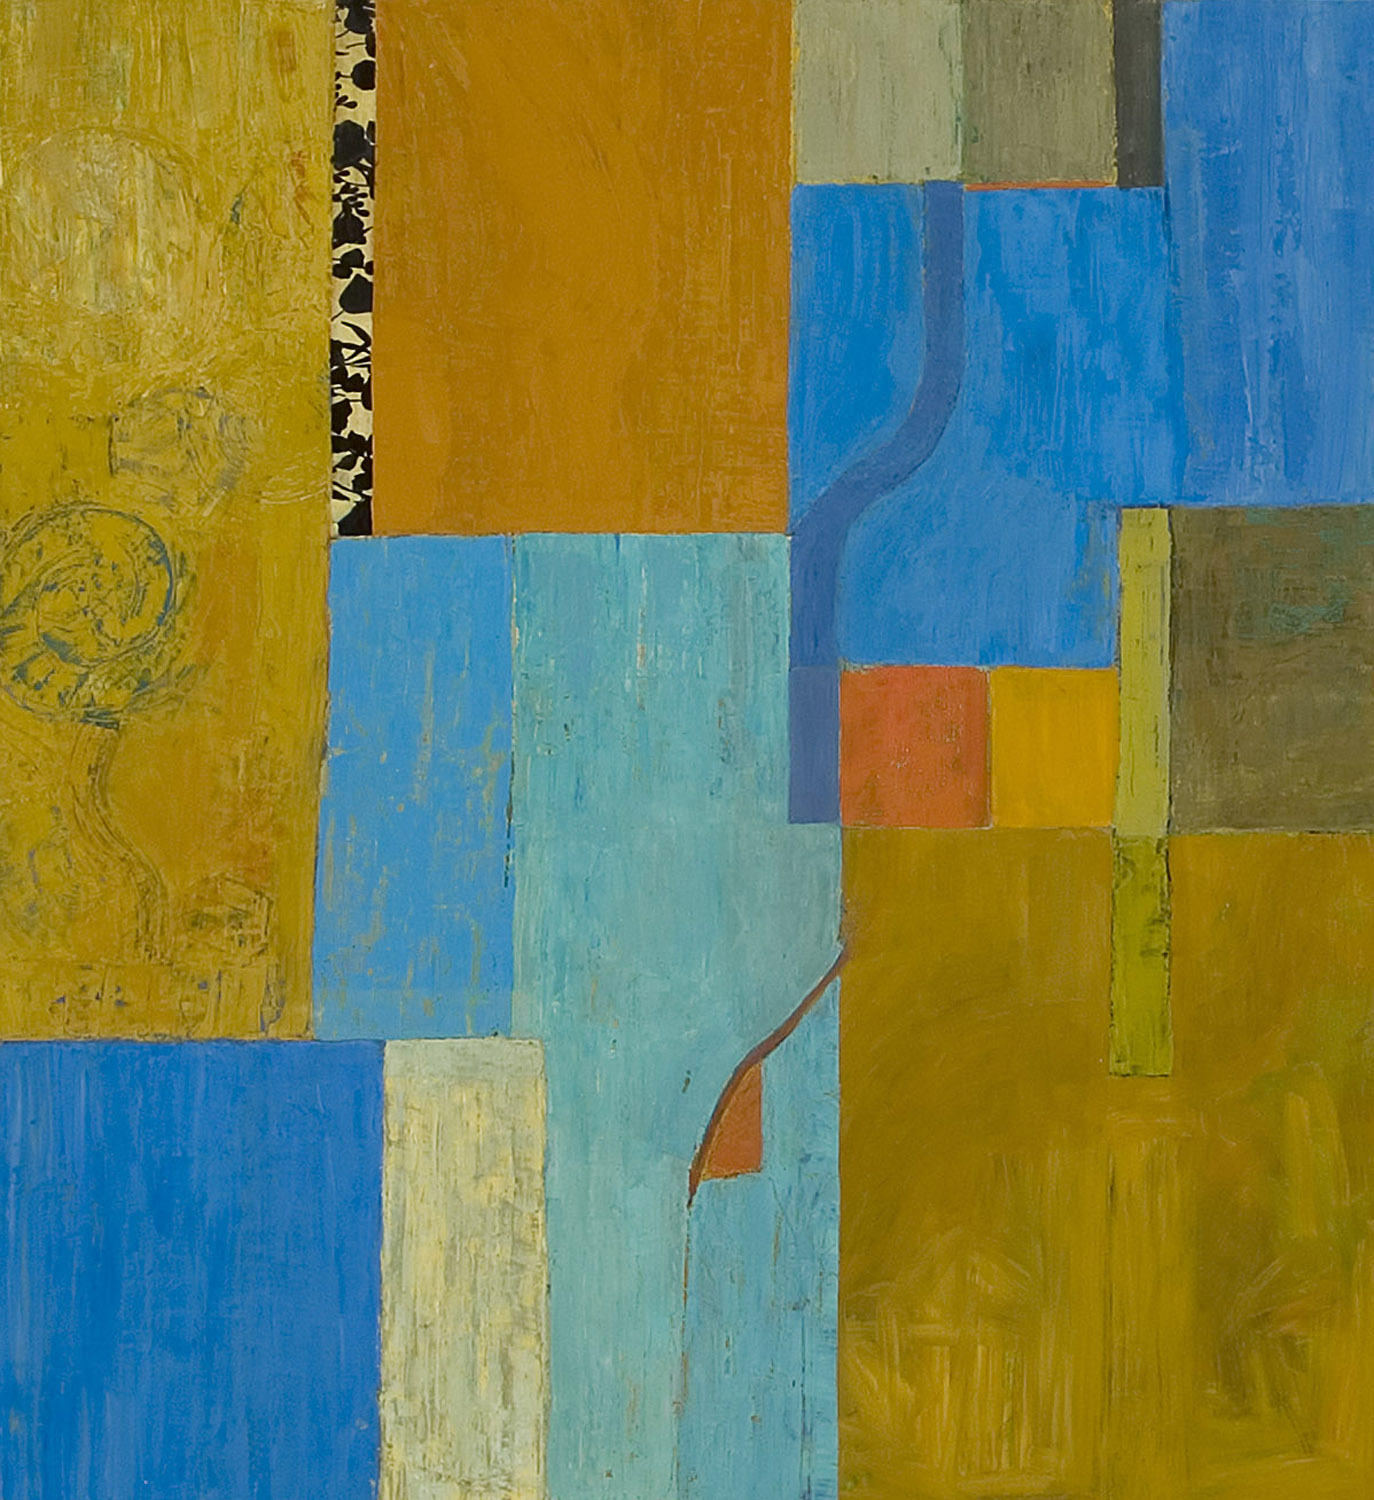 FALL  •  oil and silk on wood  •  52 by 44 inches  •  2006